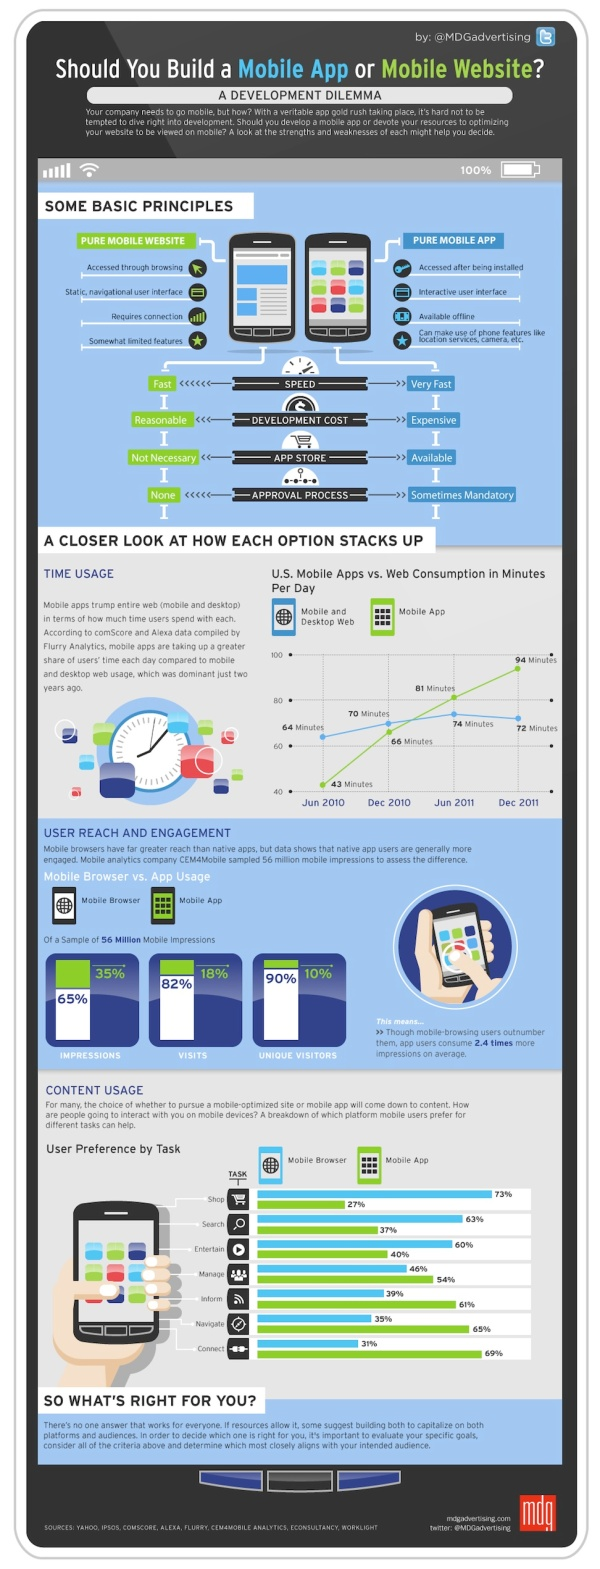 Mobile Site or Mobile App: Which Should You Build First? [INFOGRAPHIC]